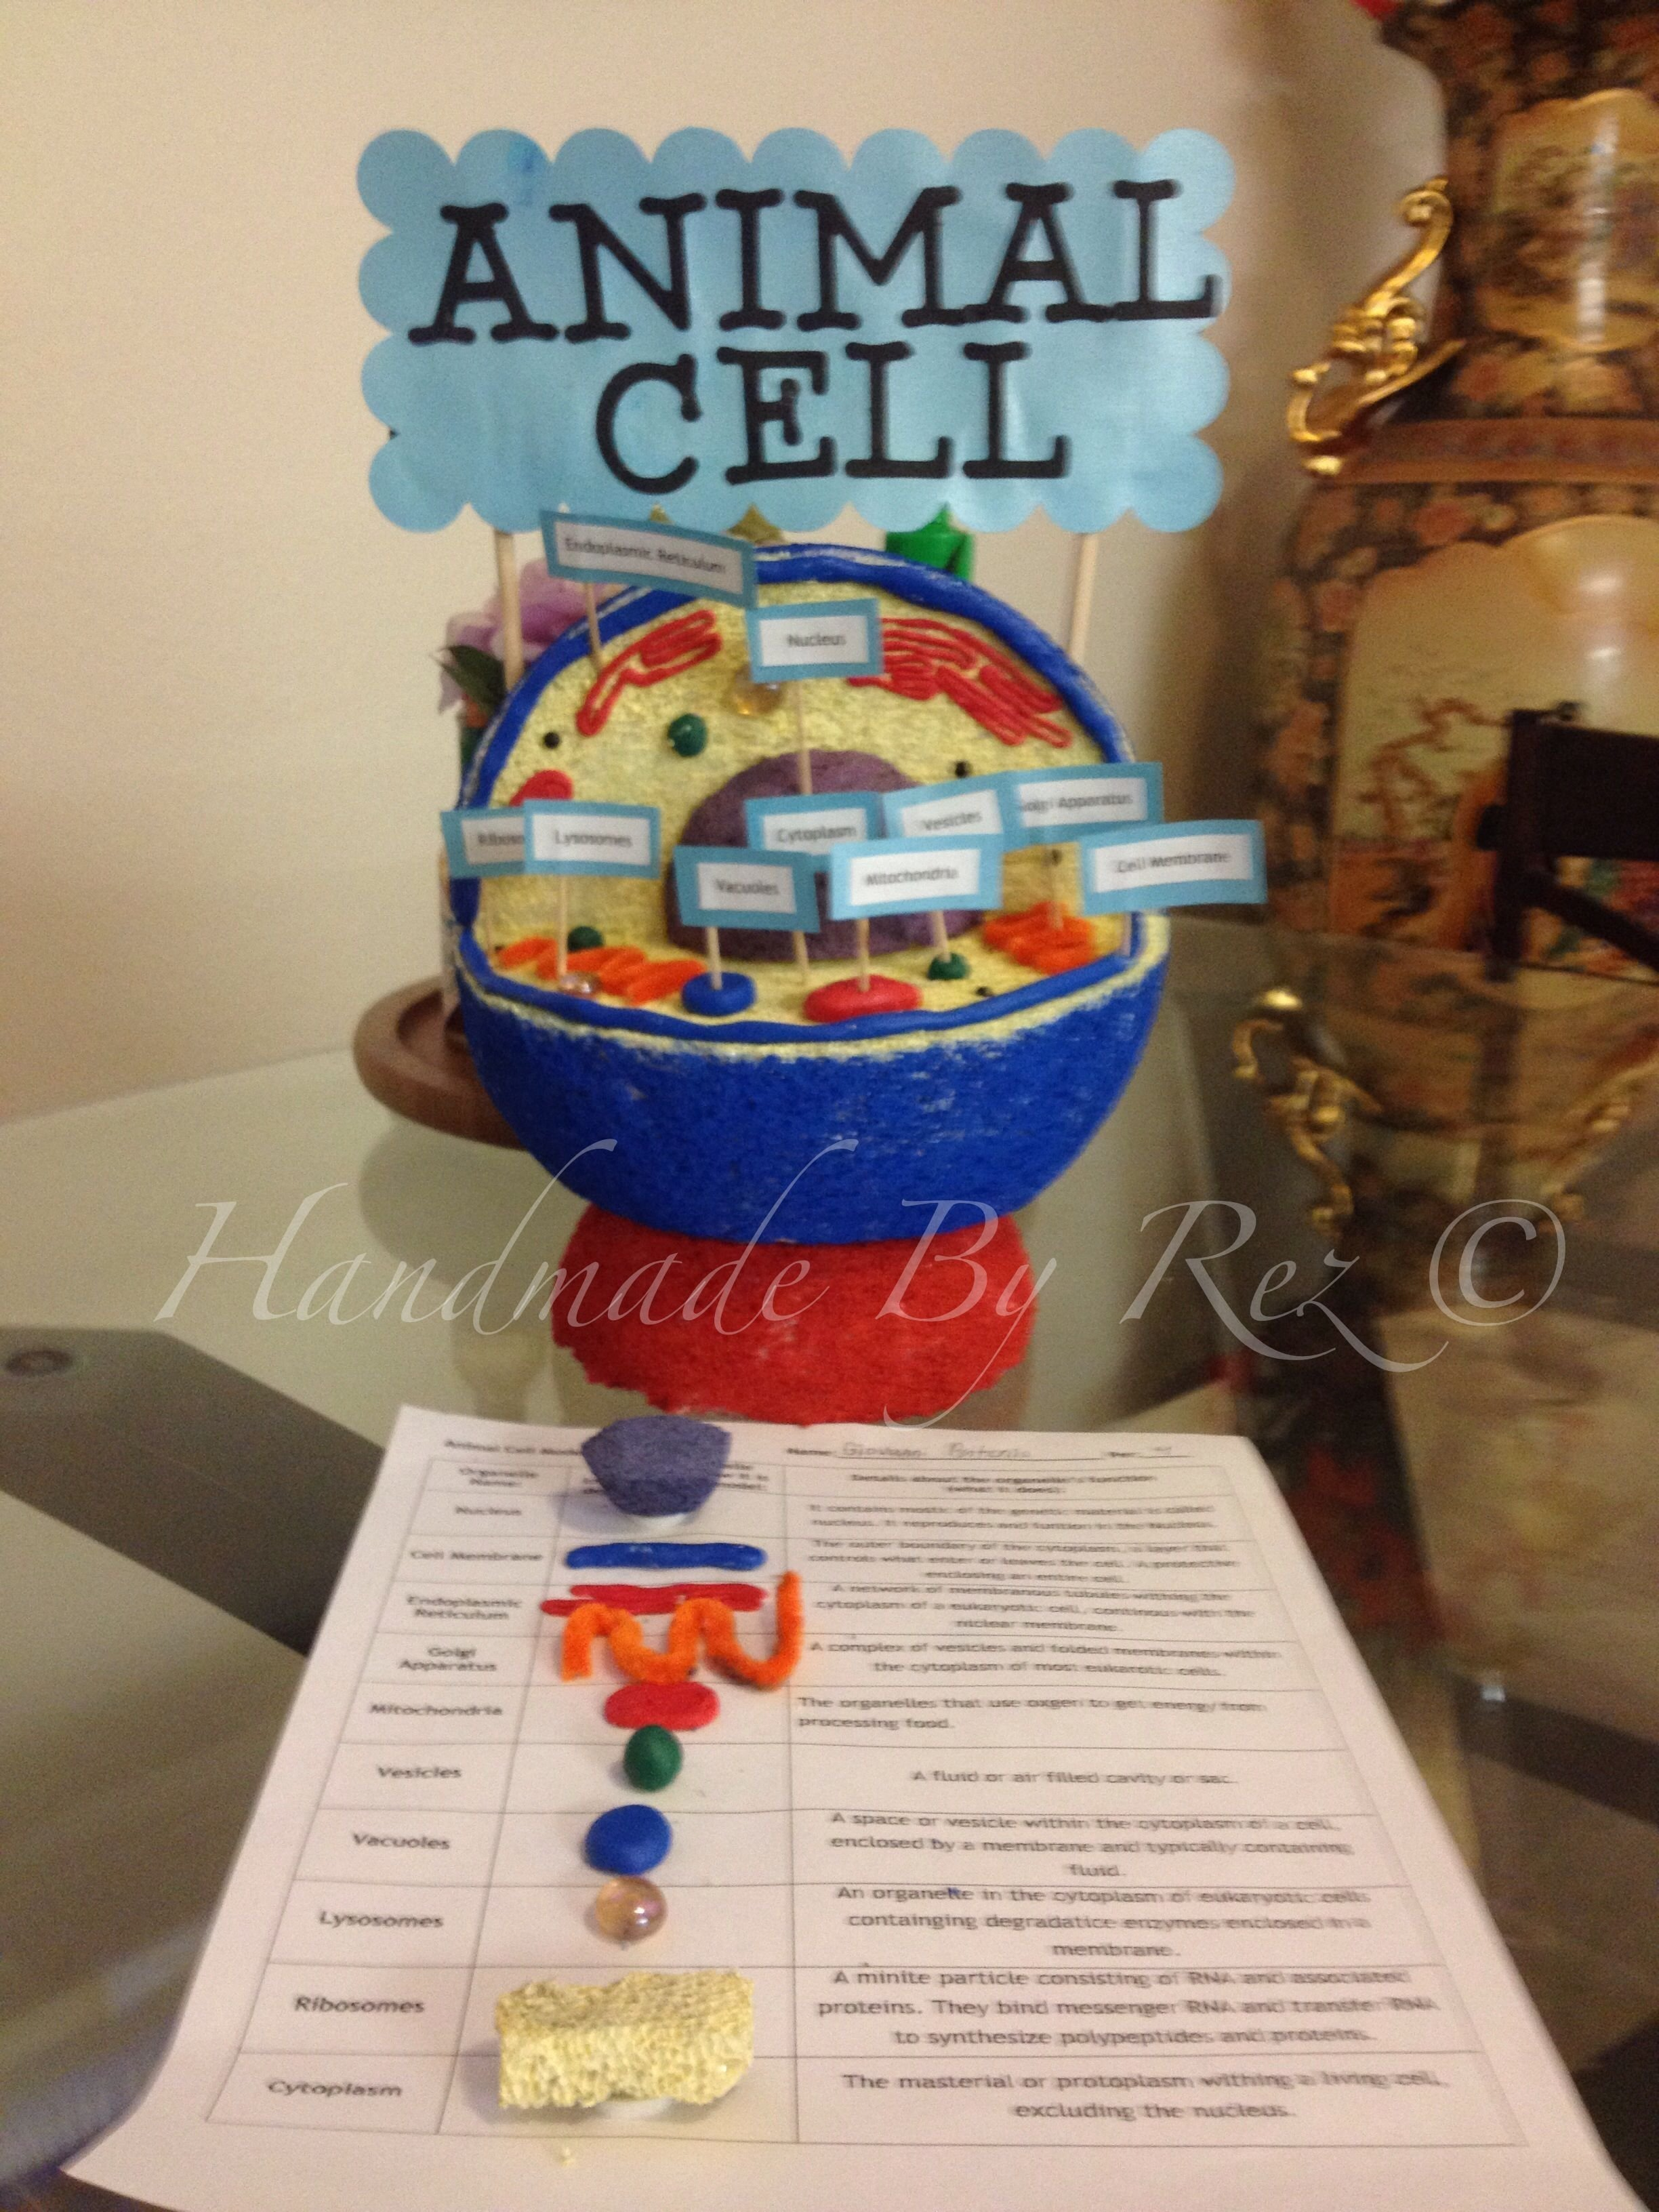 10 Most Recommended 3D Animal Cell Model Ideas this is a good example for animal cell project science project